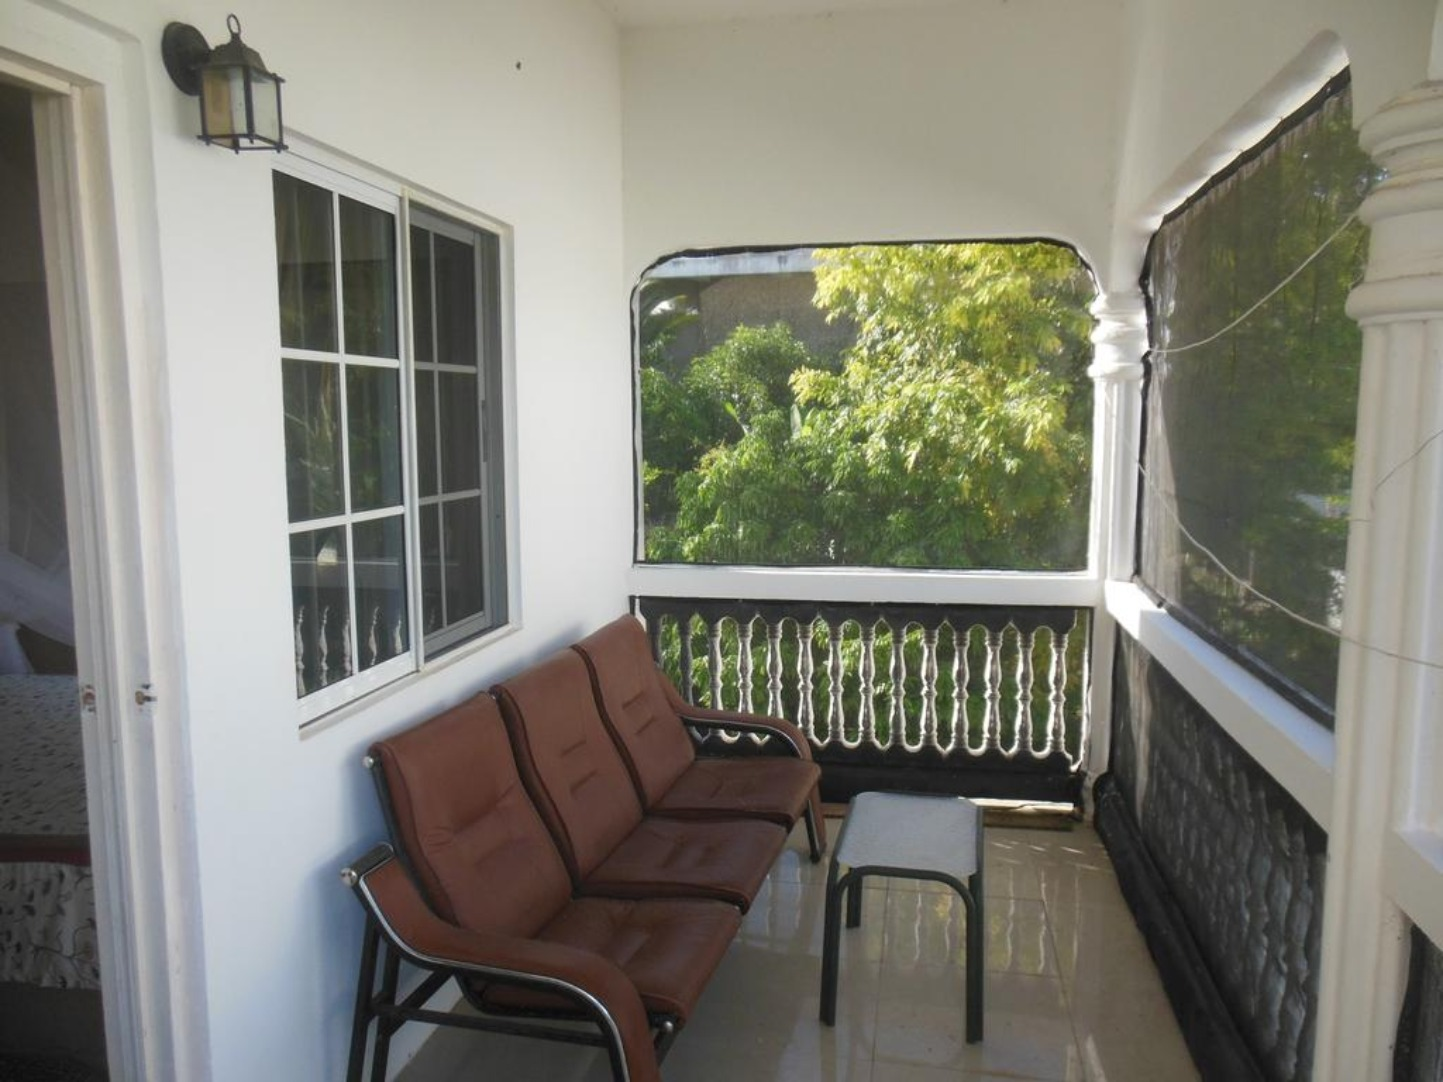 A chair sitting in front of a window at Casahun Bed & Breakfast.